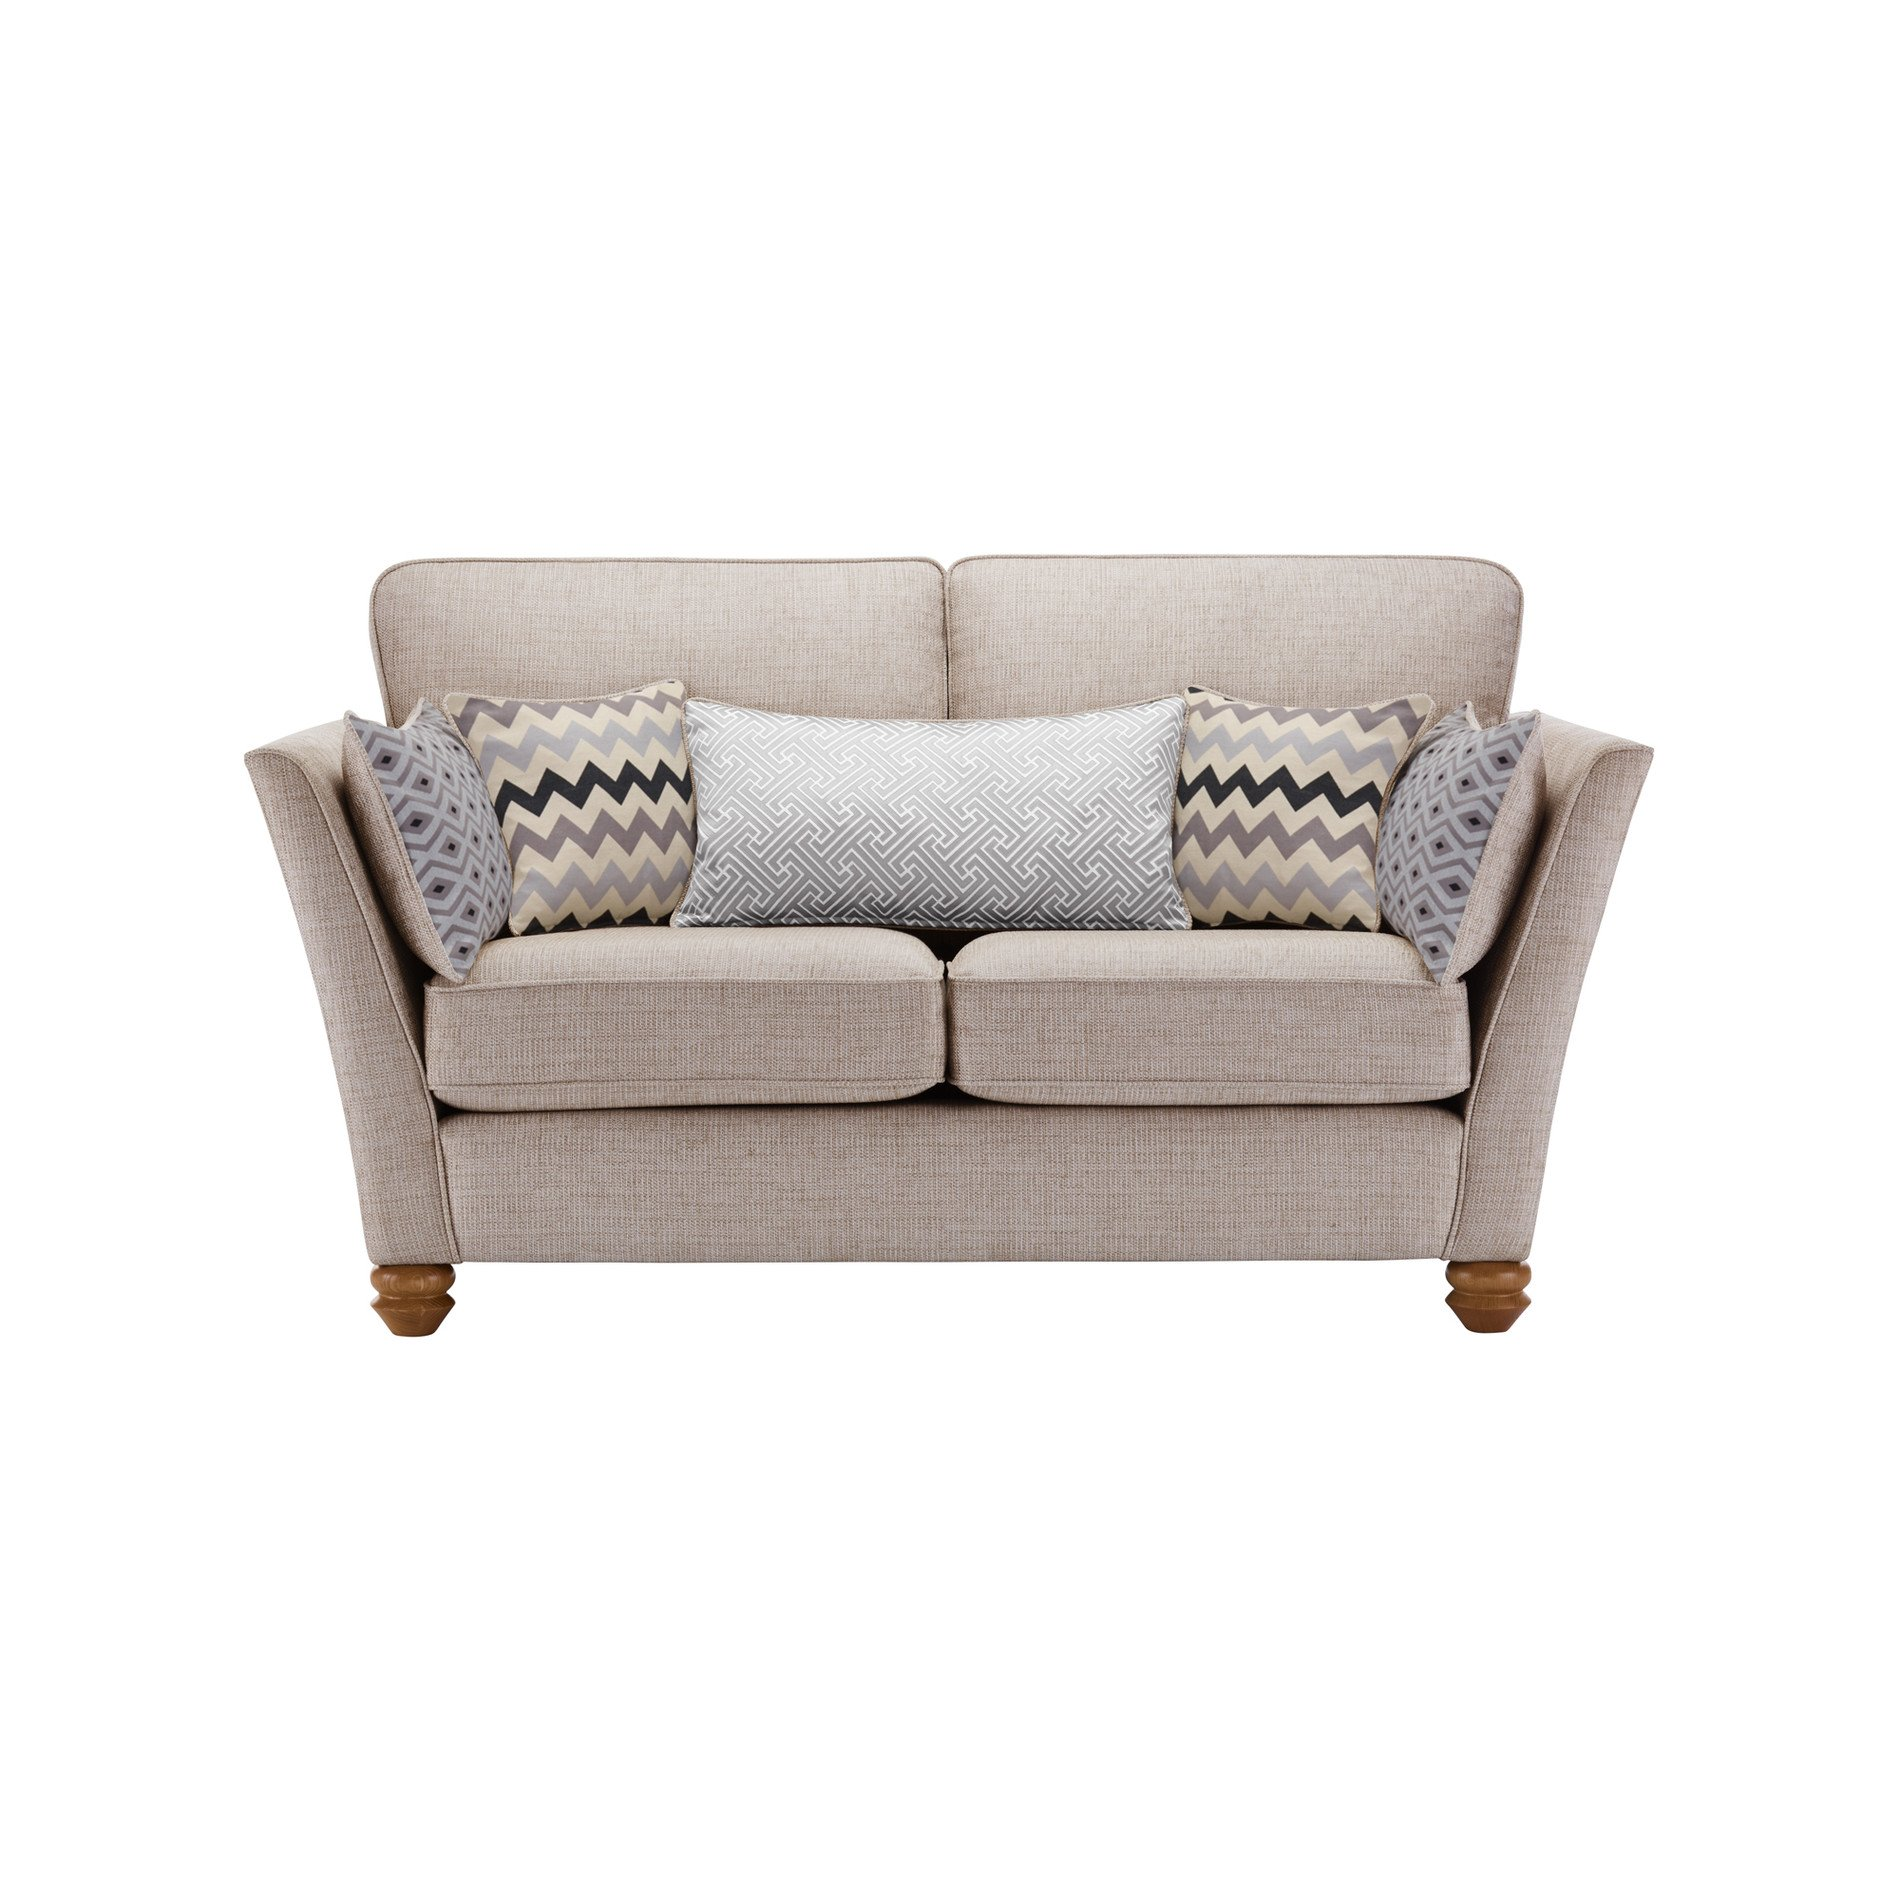 Gainsborough 2 Seater Sofa in Silver